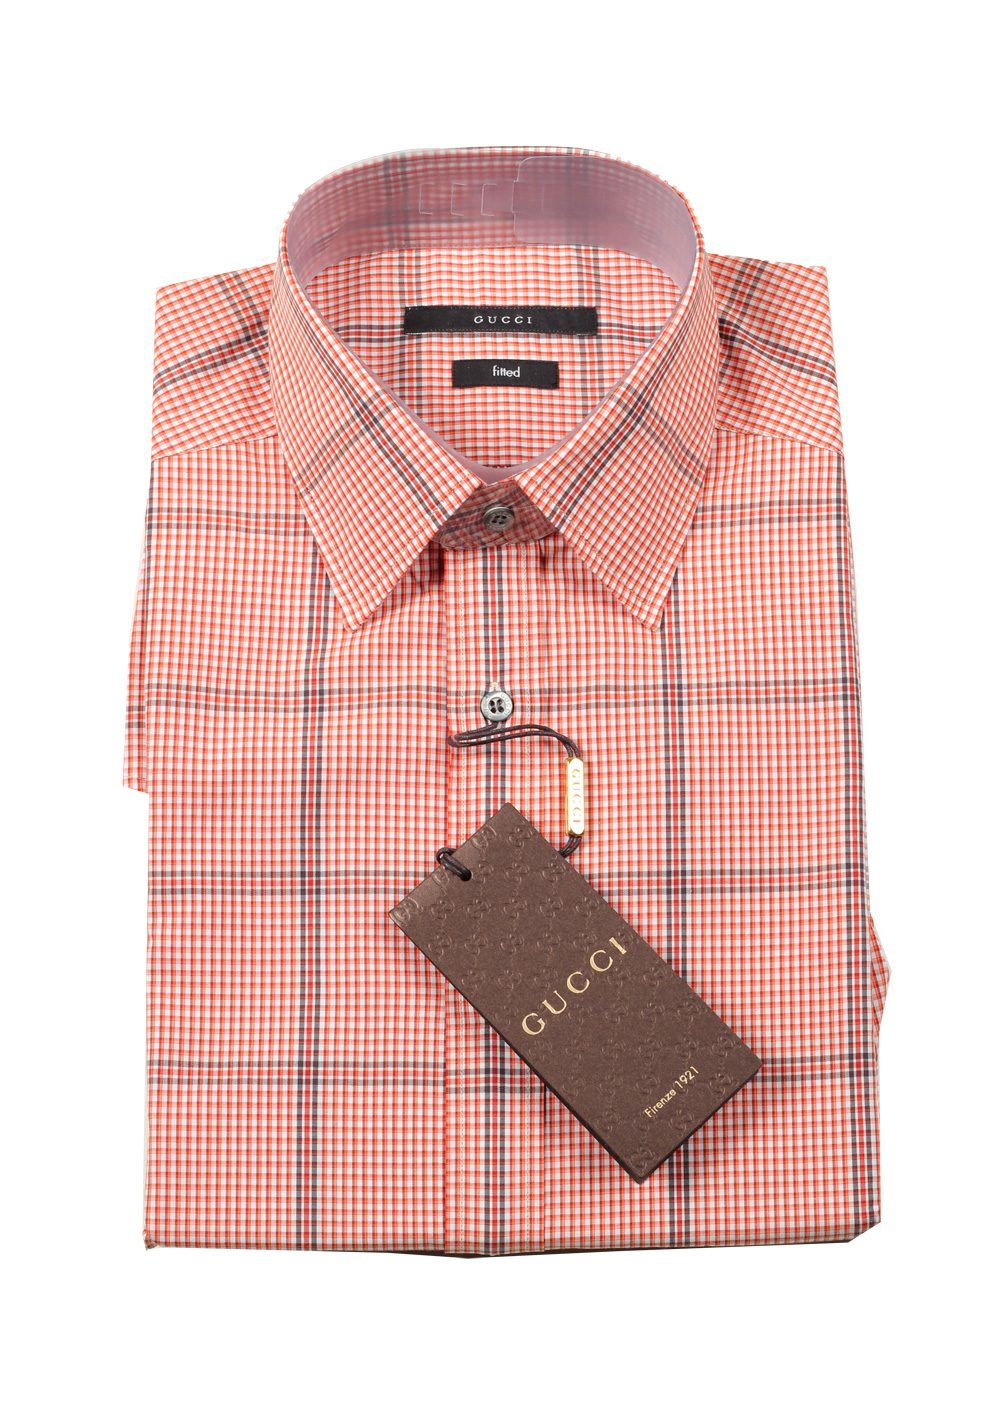 Gucci checked orange dress shirt size 40 15 75 u s for Size 15 dress shirt